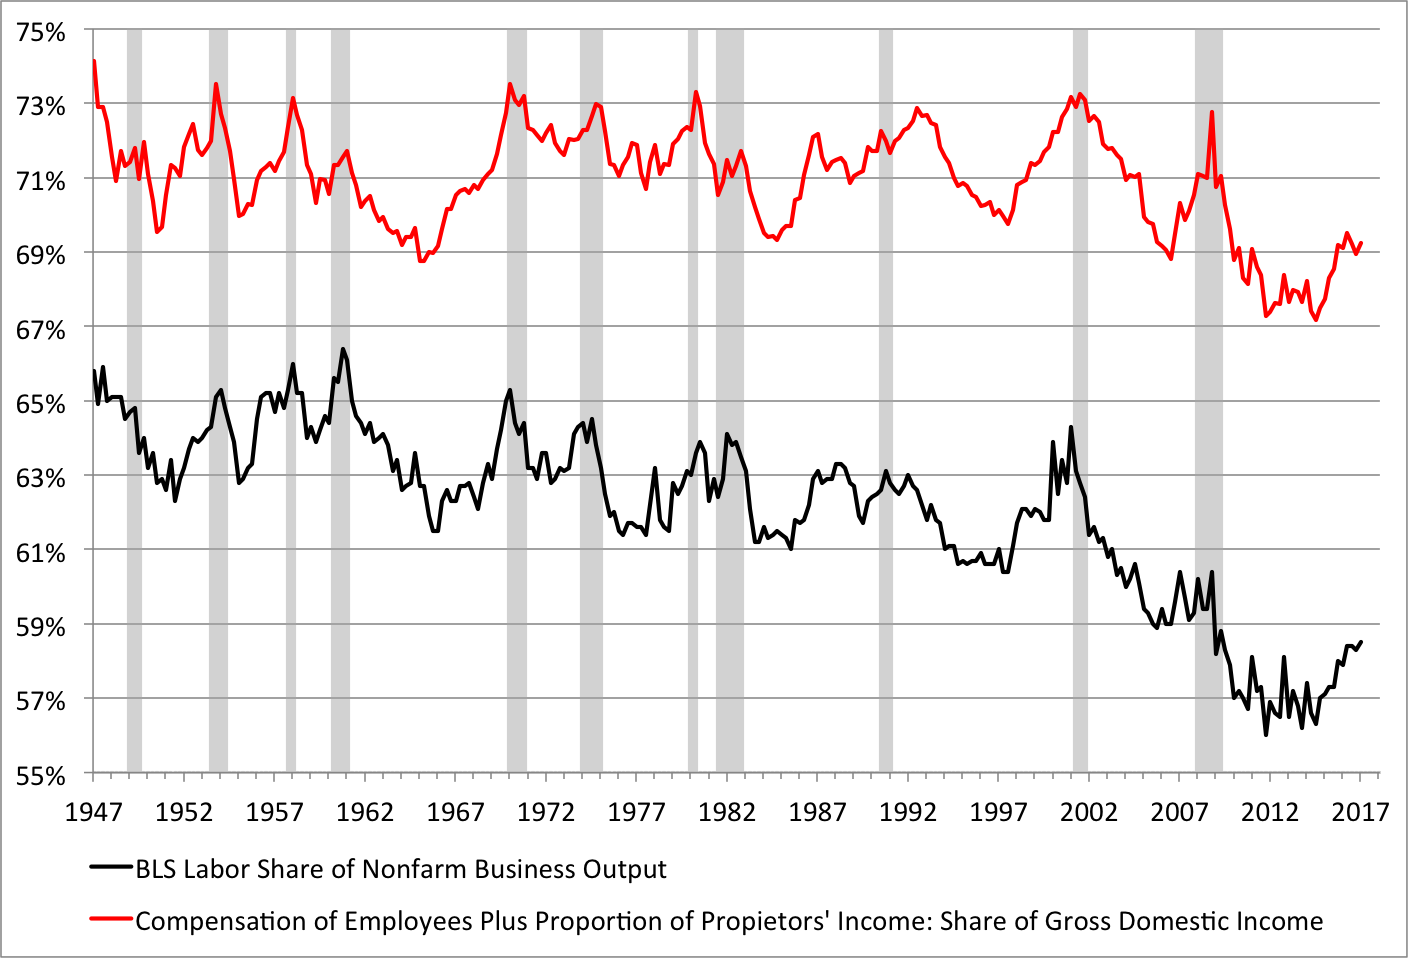 Note: Shaded areas denote recessions. Sources: Bureau of Labor Statistics and Bureau of Economic Analysis.